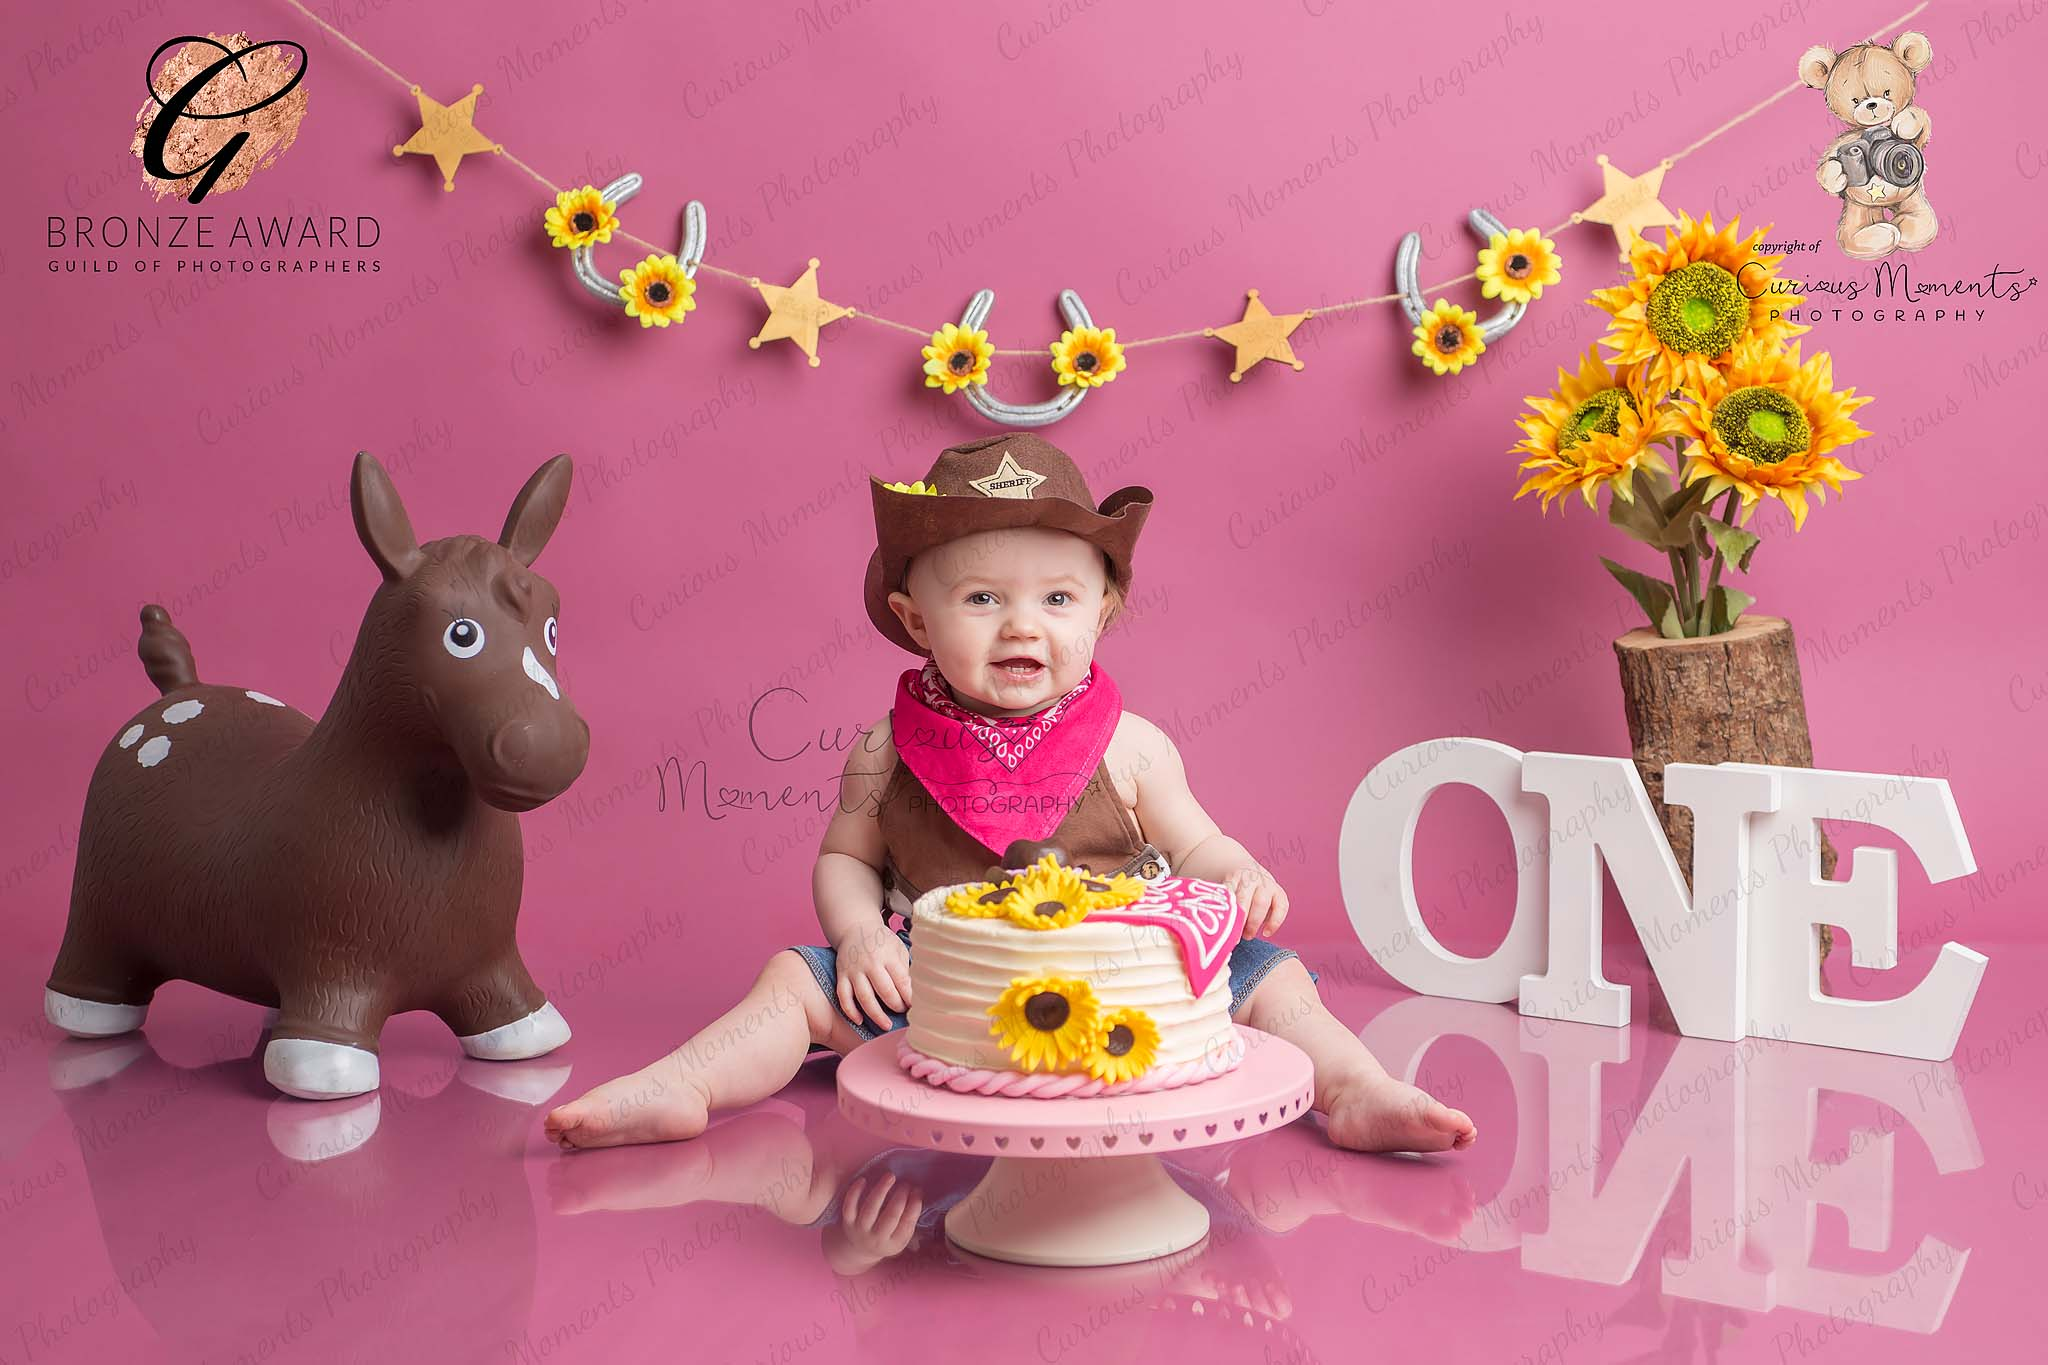 Clients review of her cake smash